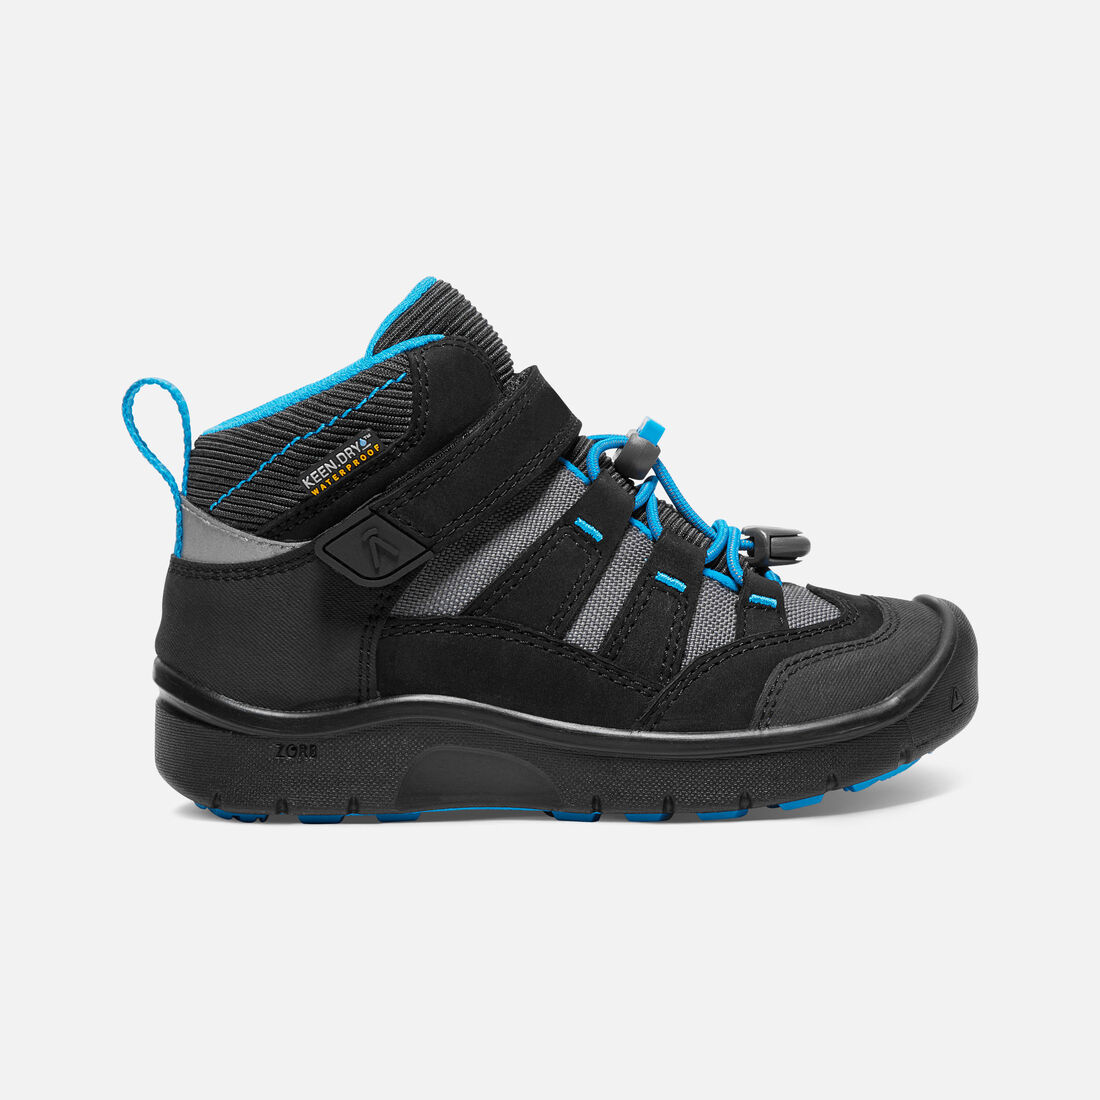 YOUNGER KIDS' HIKEPORT MID WATERPROOF HIKING BOOTS in Black/Blue Jewel - large view.